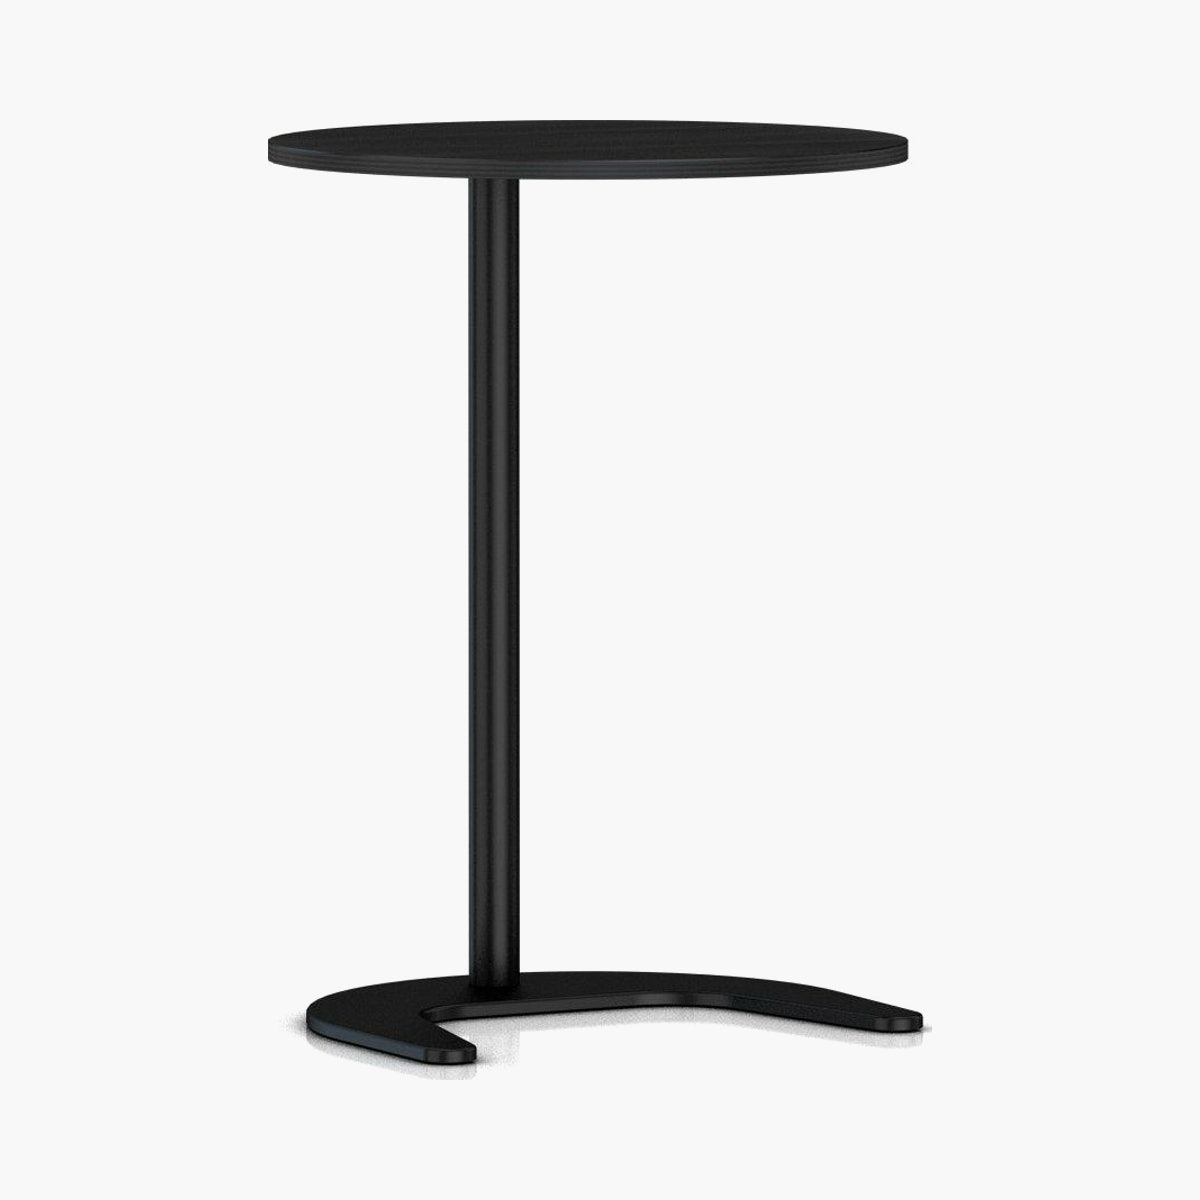 Plex Fixed-Height Work Table